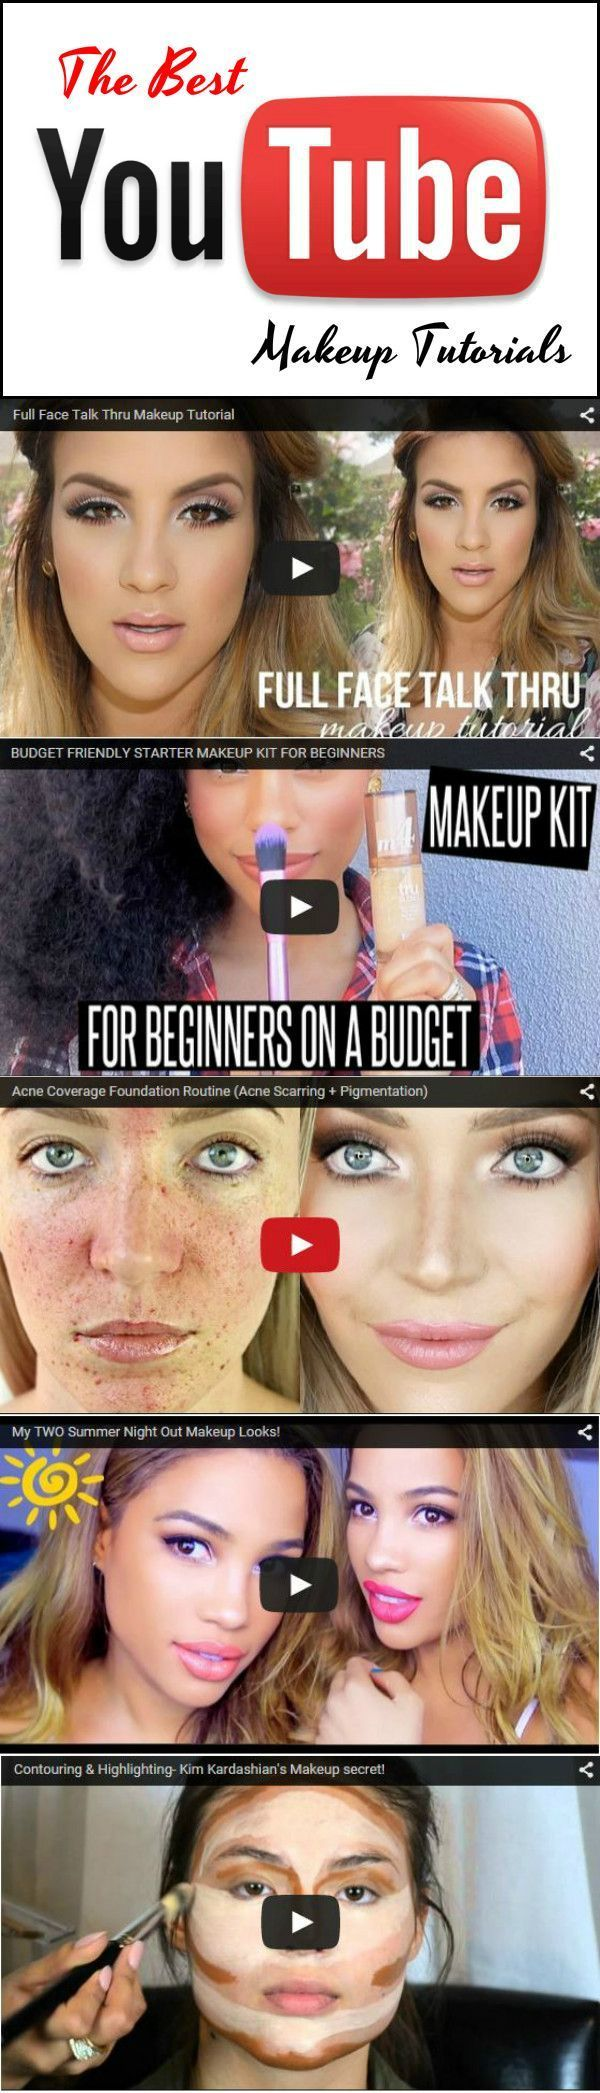 Top 10 youtube makeup tutorials you need to watch make up top 10 youtube makeup tutorials you need to watch baditri Images